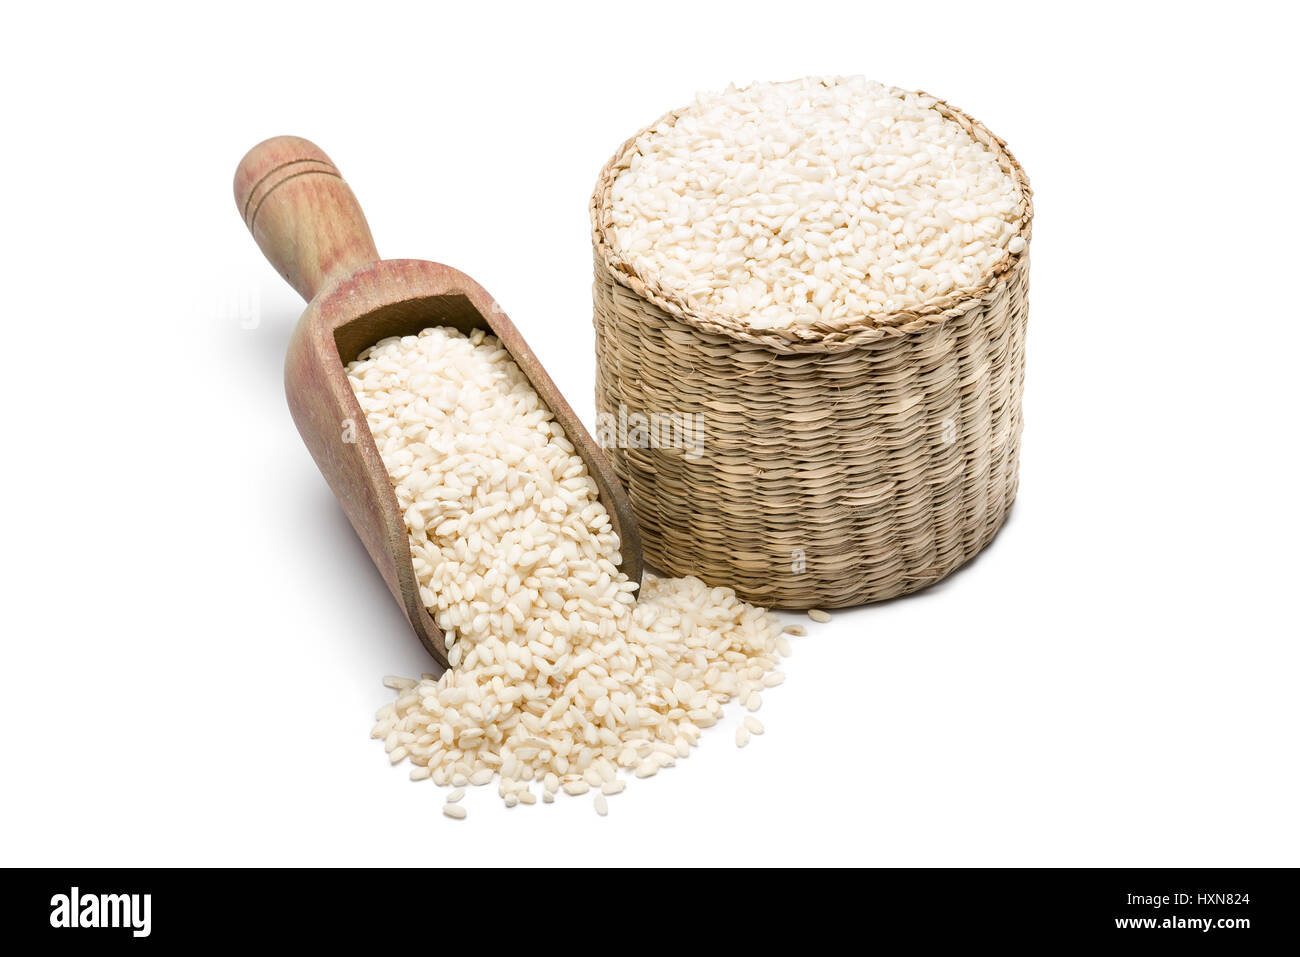 white rice in wooden scoopl and straw basket, on white background - Stock Image